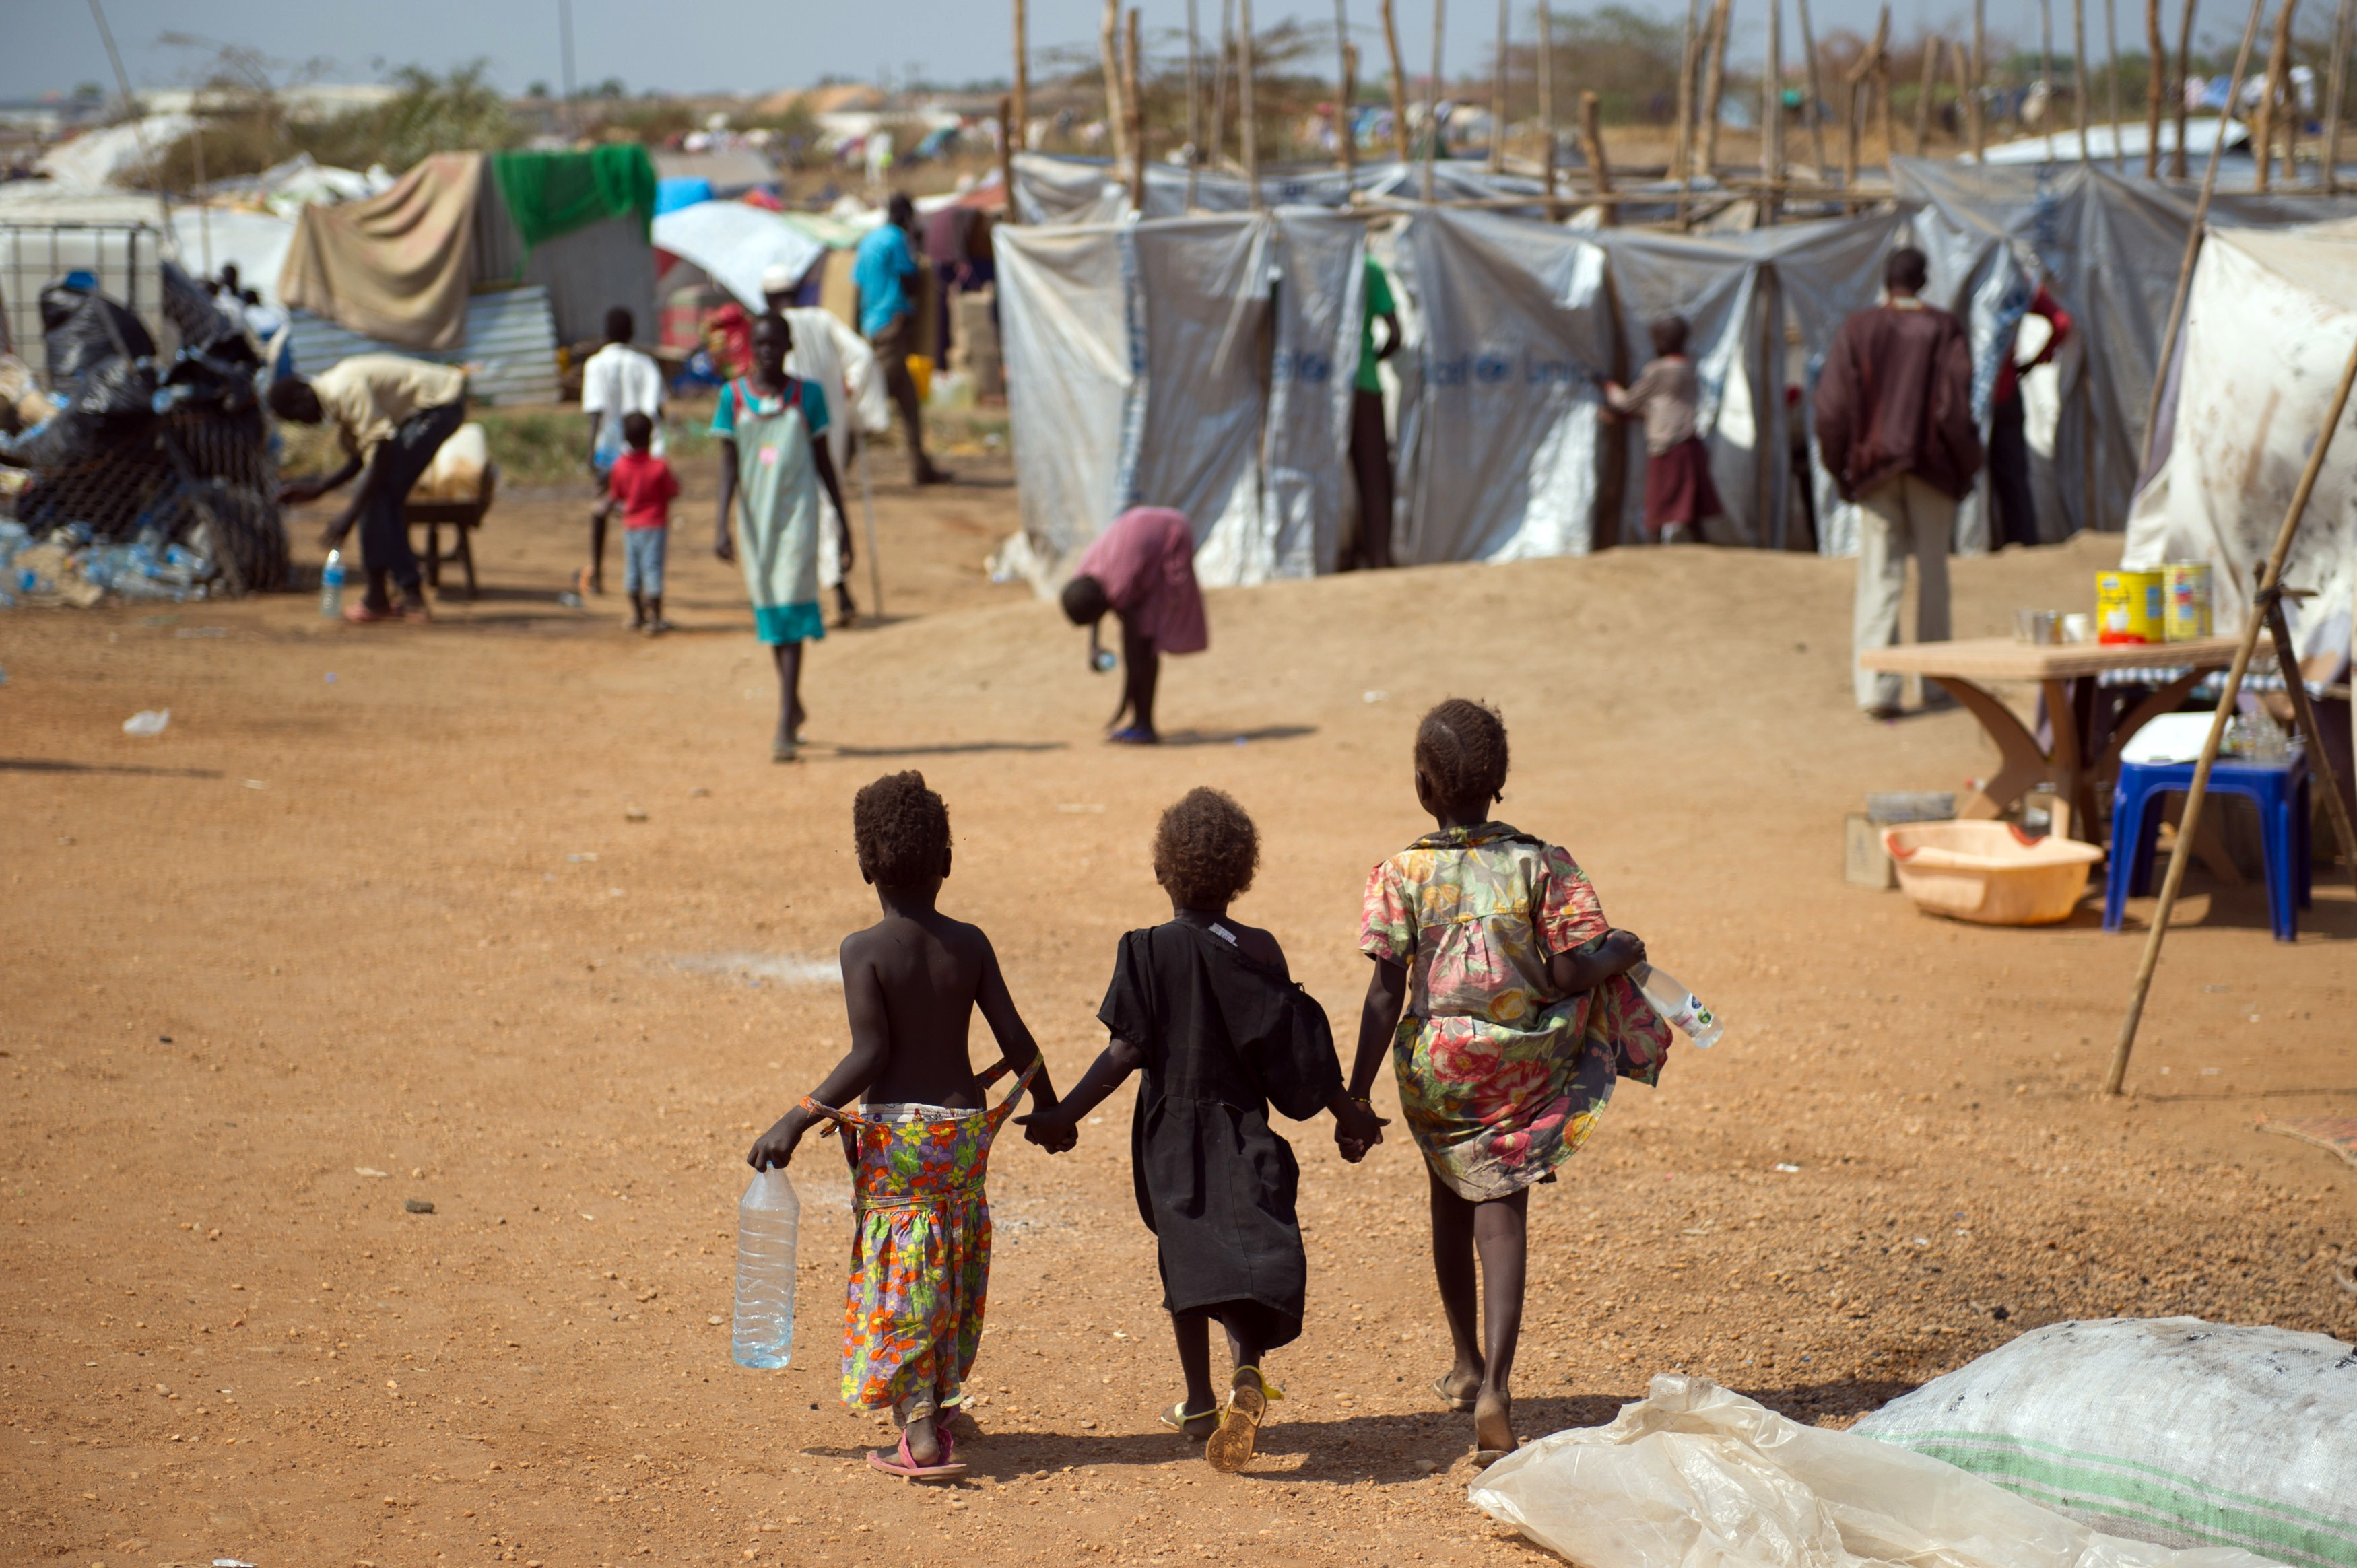 Three children walk through a spontaneous camp for internally displaced persons at the United Nations Mission to South Sudan (UNMISS) base in Juba,  on January 9, 2014. Over 17,000 people are living at the base, with new arrivals every day, due to ongoing conflict in the world's youngest nation.  (AFP PHOTO/PHIL MOORE)